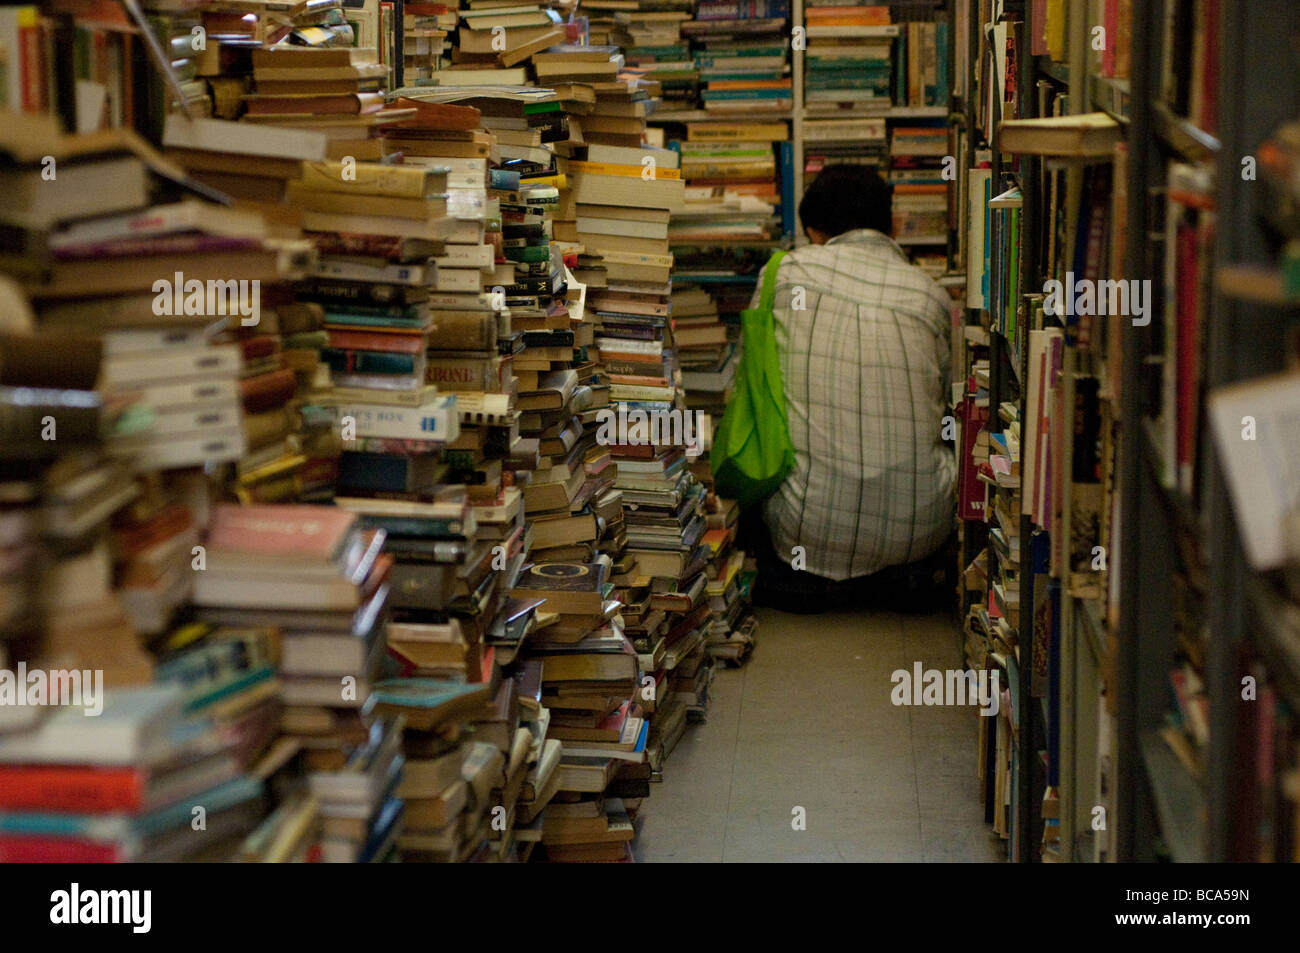 Man browsing in Gould's secondhand bookshop on King Street, Newtown, Sydney NSW Australia - Stock Image